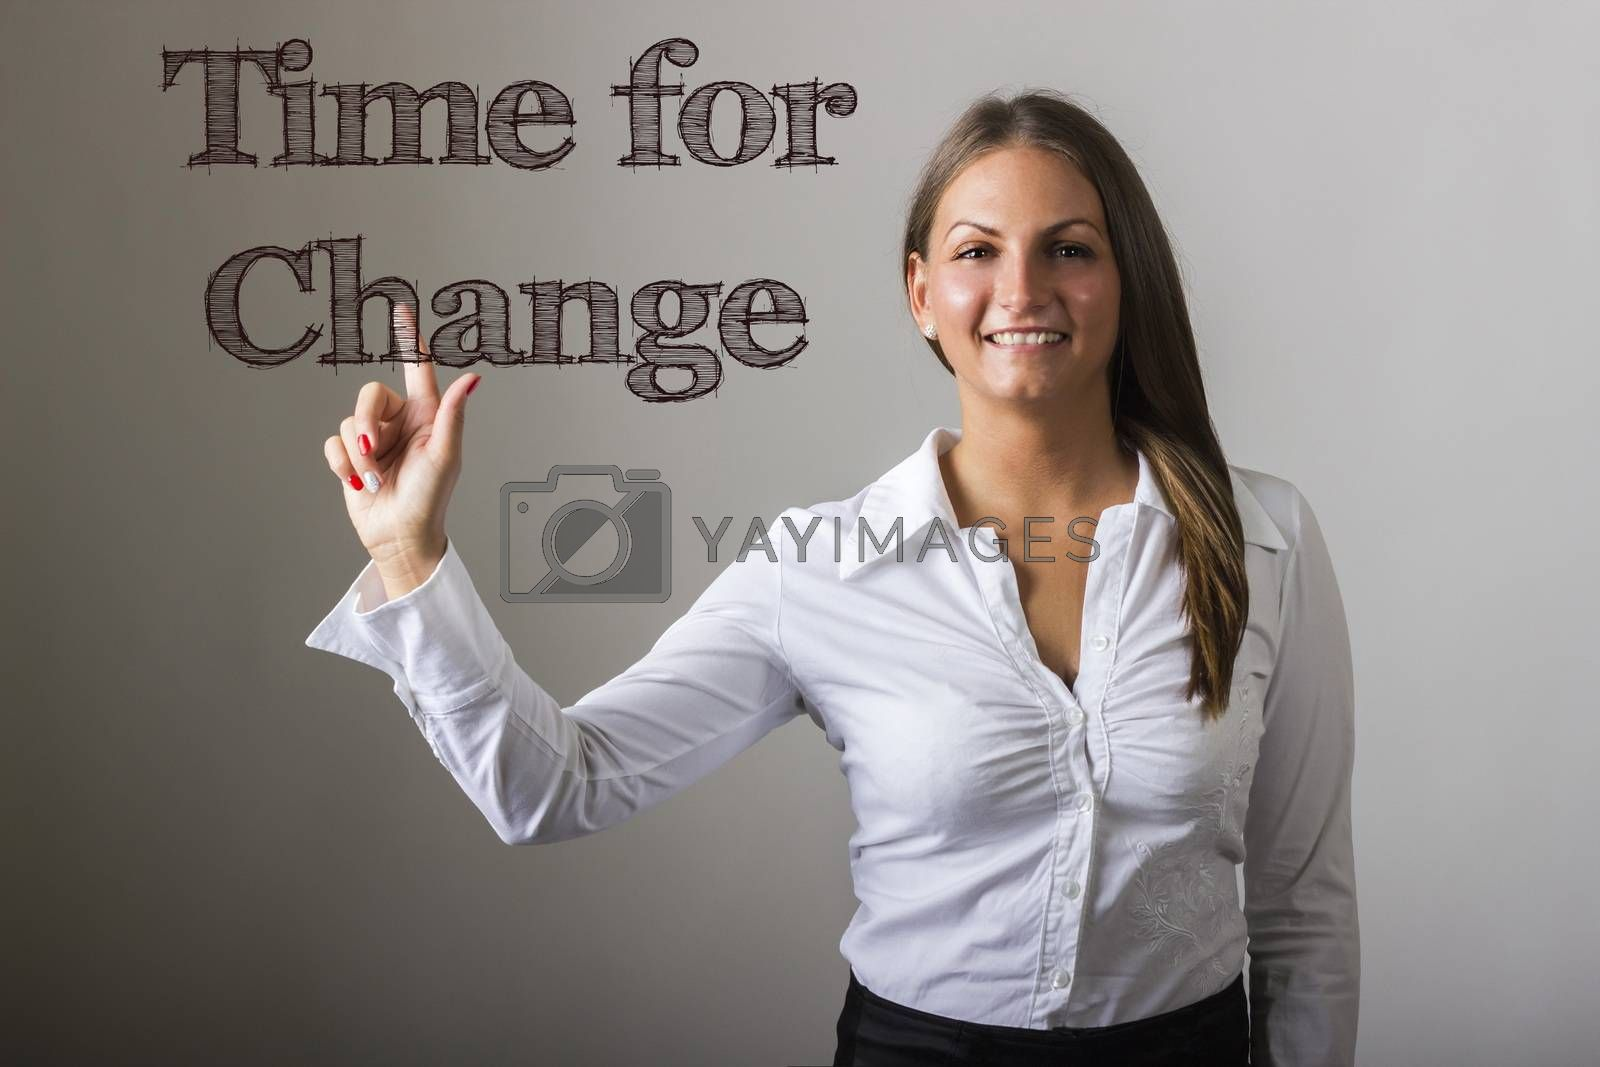 Time for Change - Beautiful girl touching text on transparent surface - horizontal image